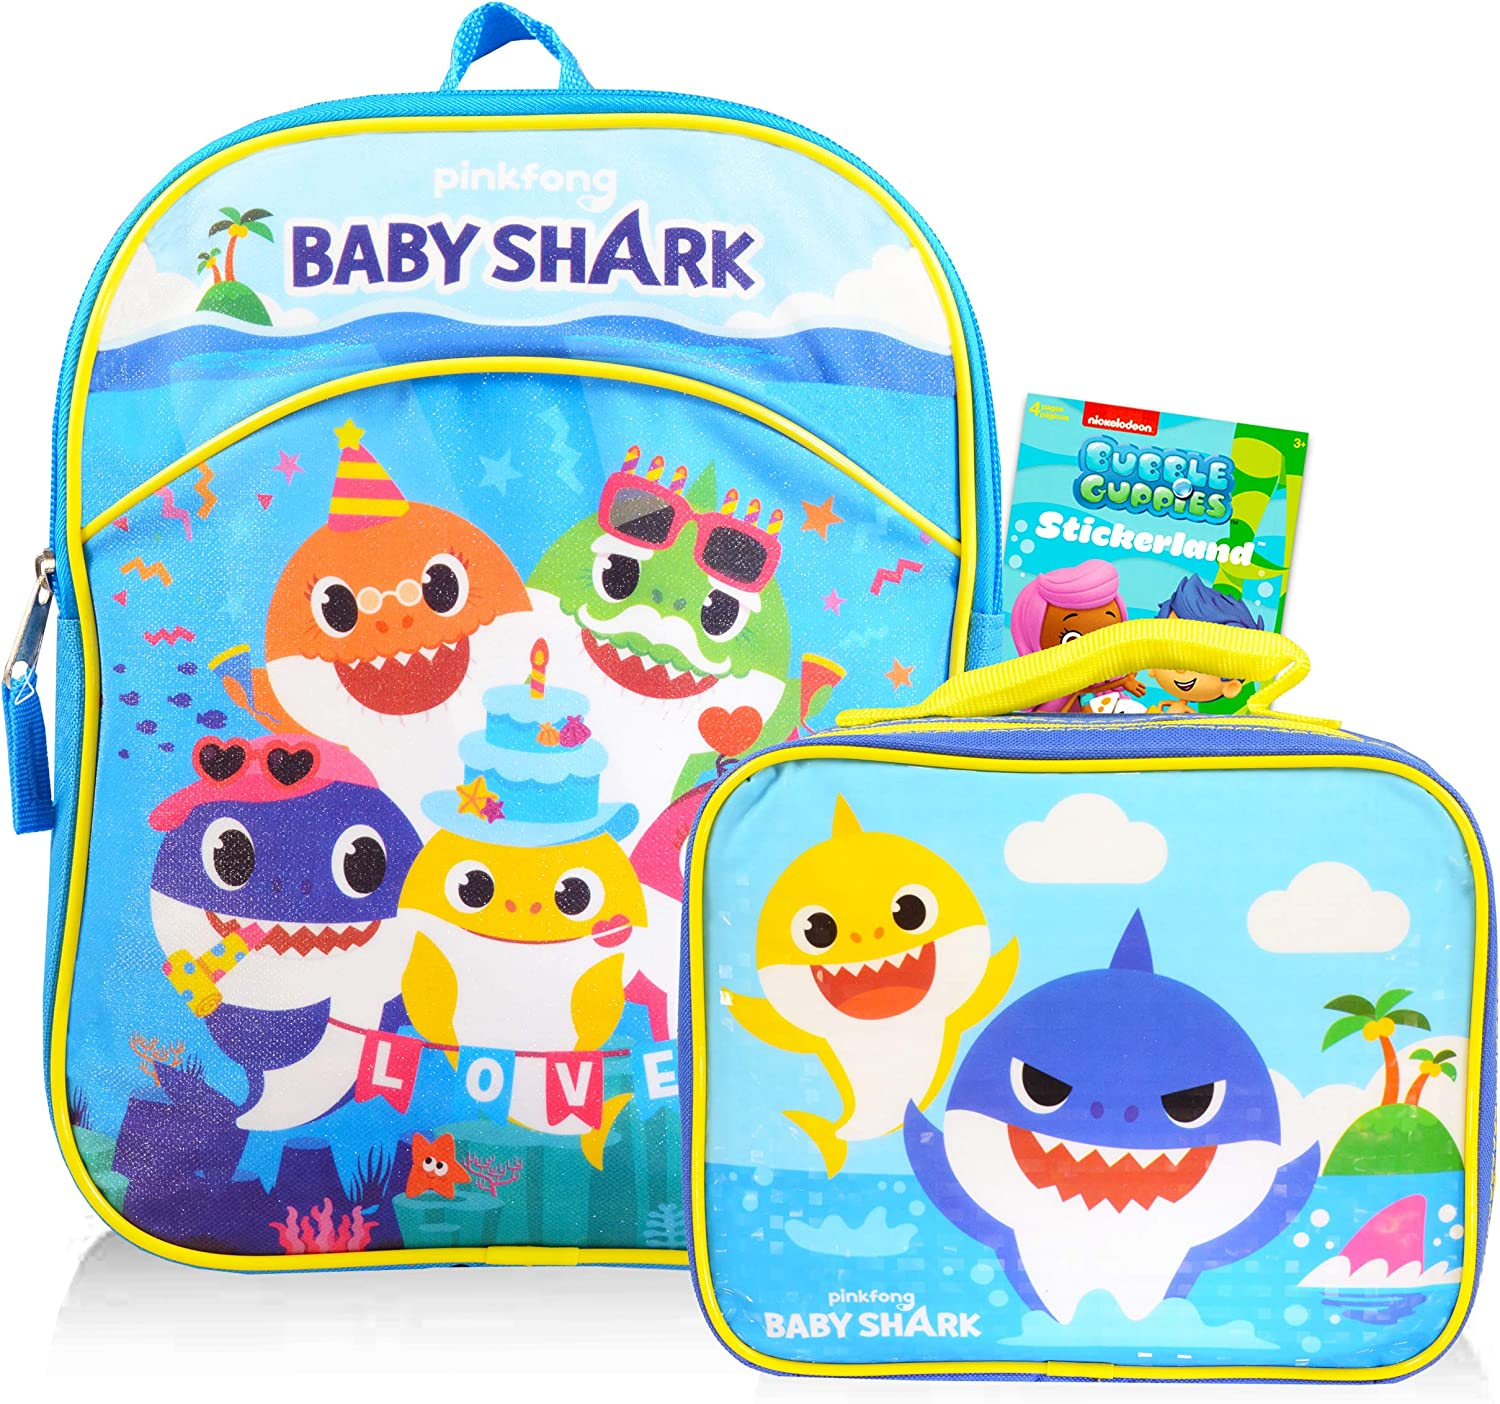 Baby Shark Mini Backpack with Lunch Bag for Kids with Stickers (Baby Shark School Supplies Bundle)